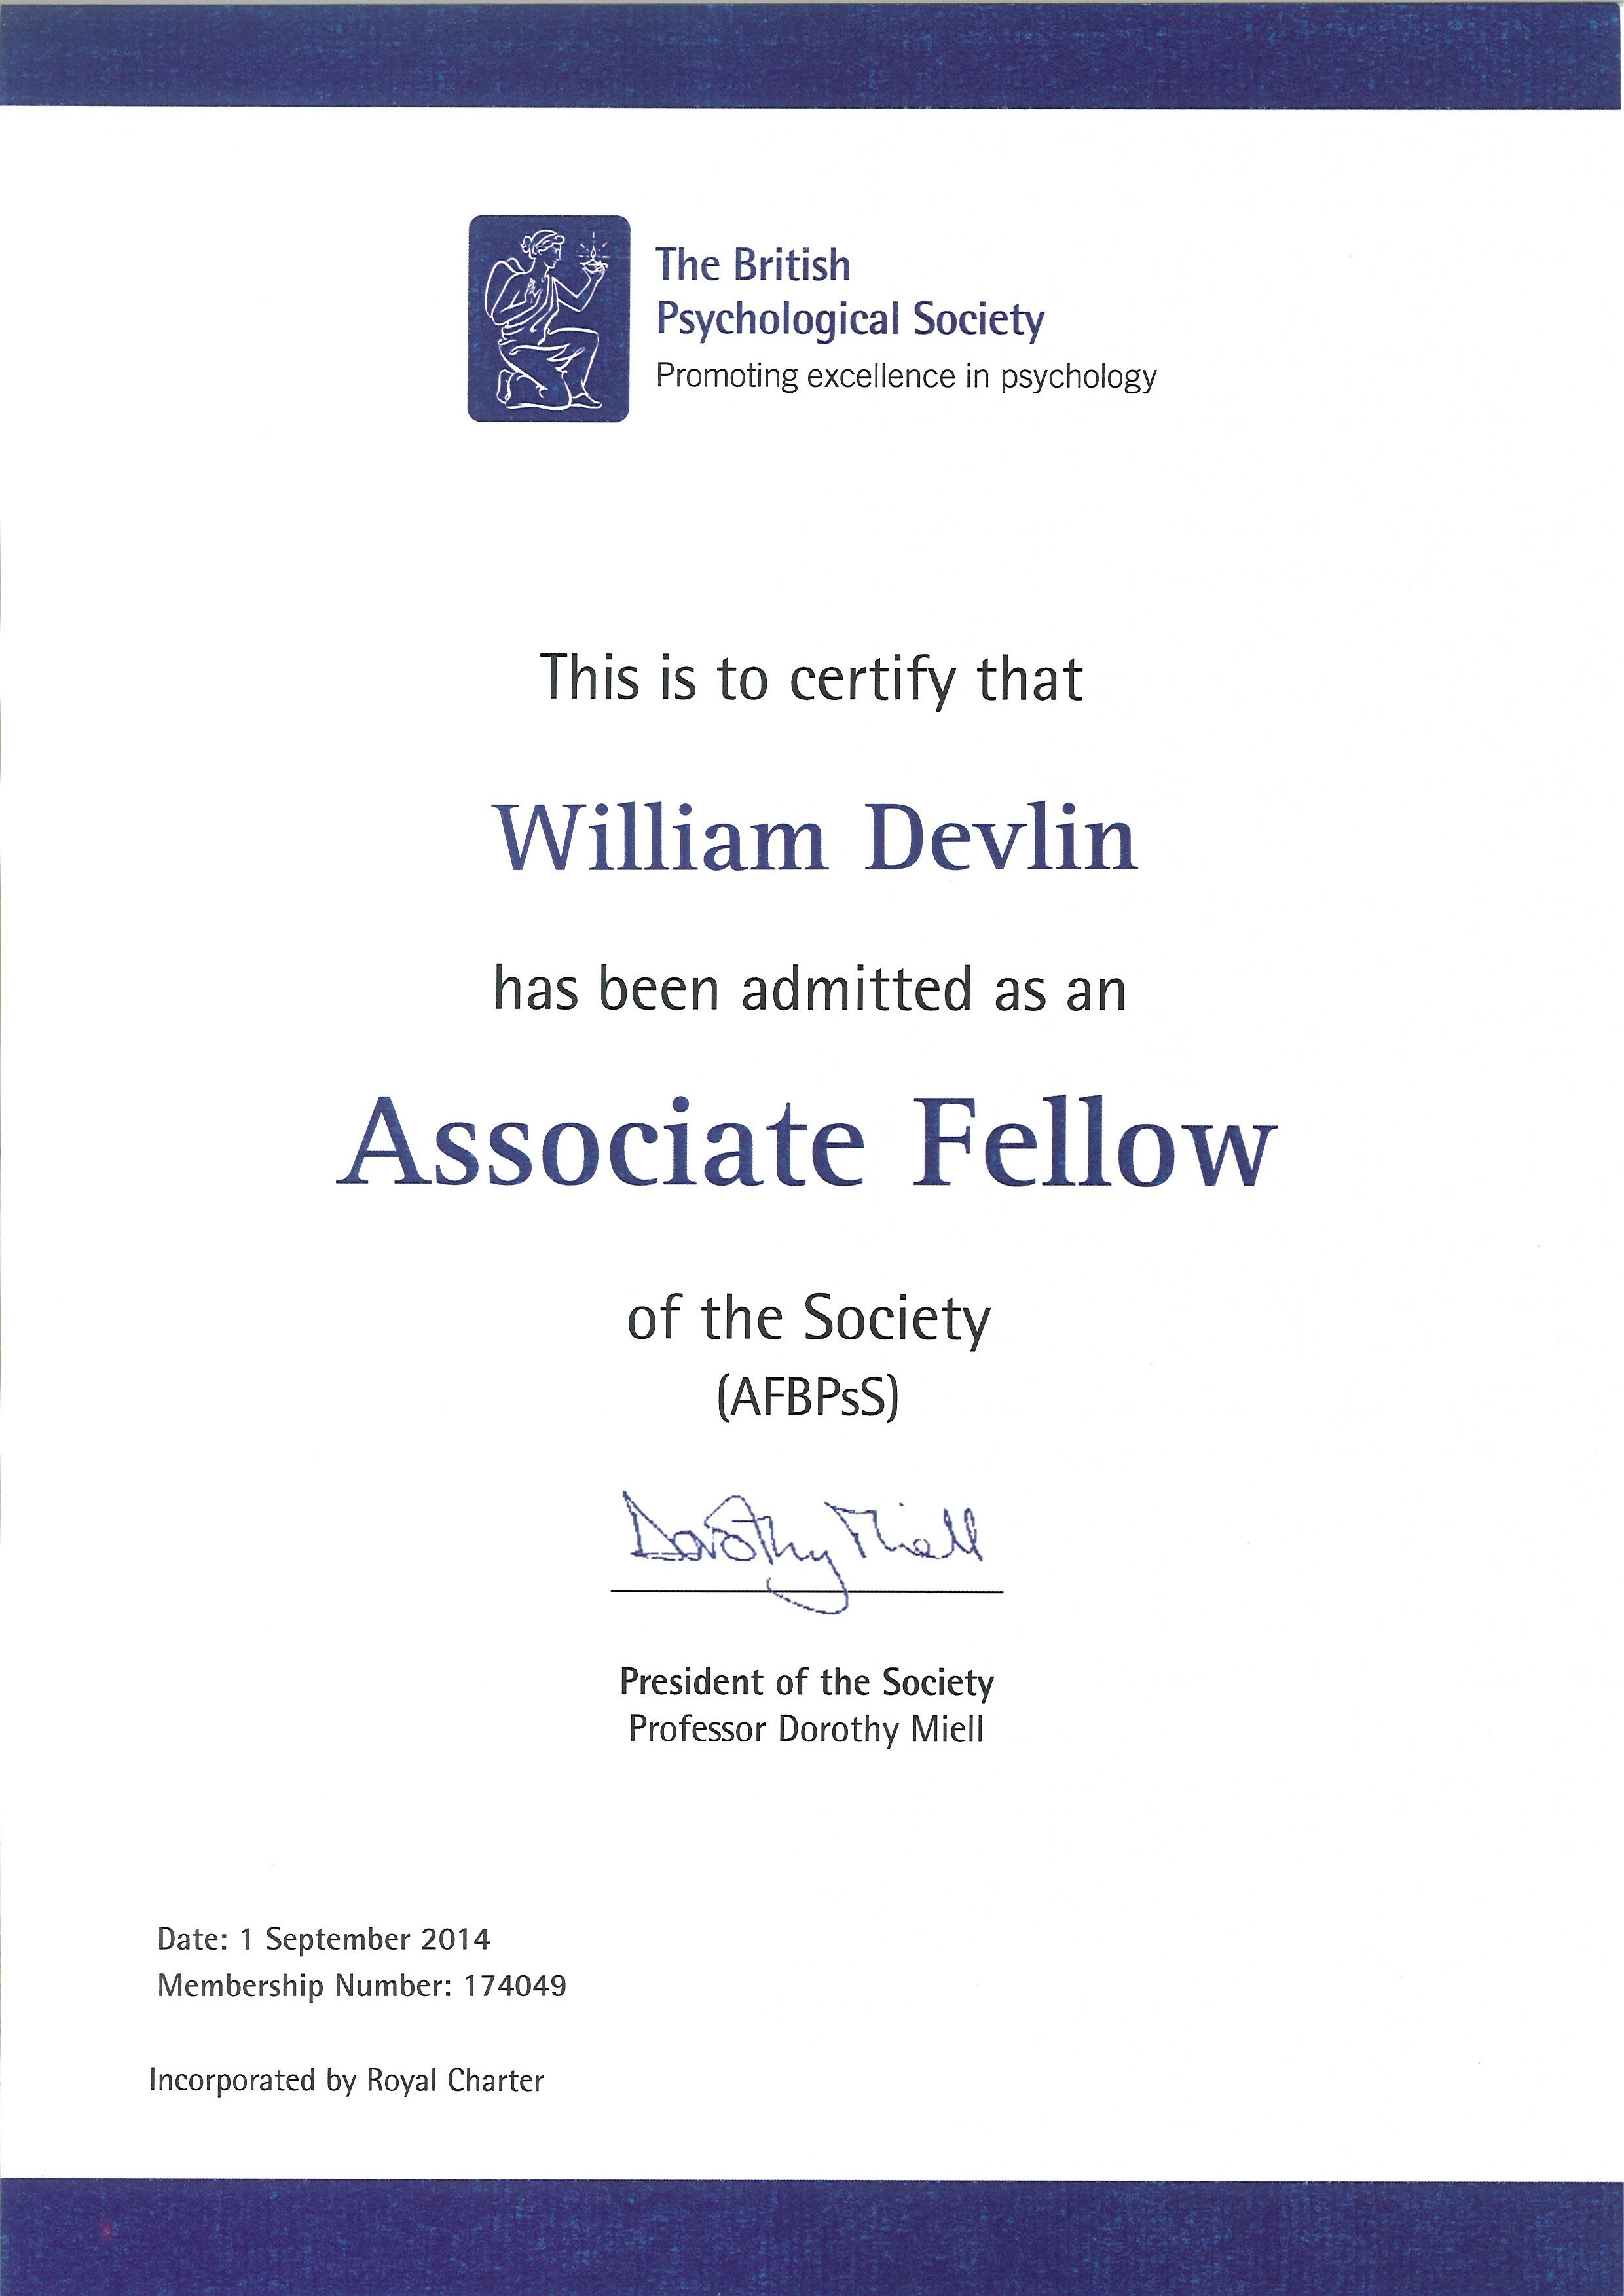 Professional accreditation and certification associate fellow of the bps 1betcityfo Choice Image